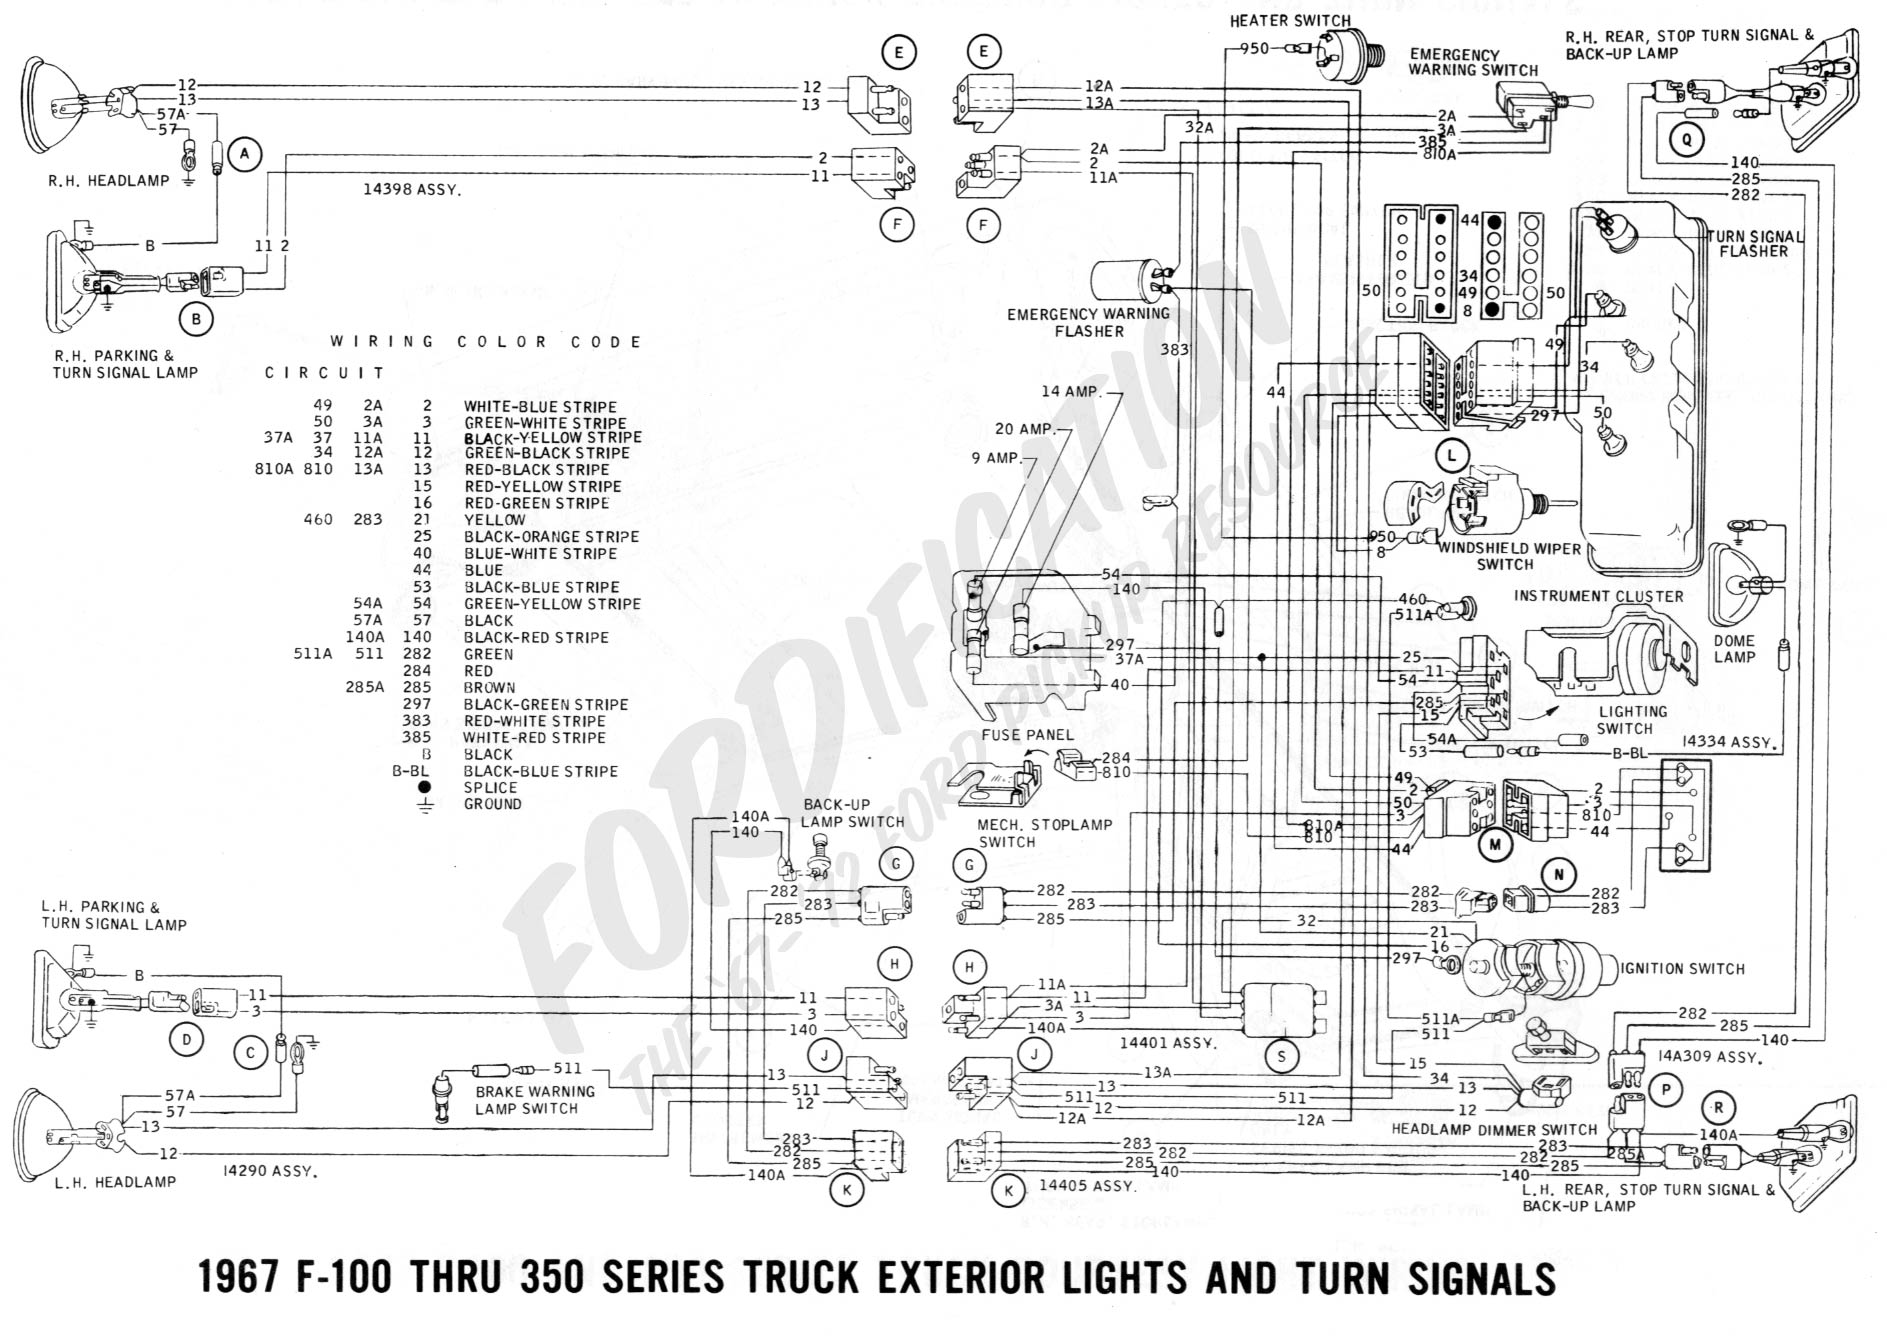 1968 ford steering column wiring colors getting started of wiring diagram 1969 oldsmobile 442